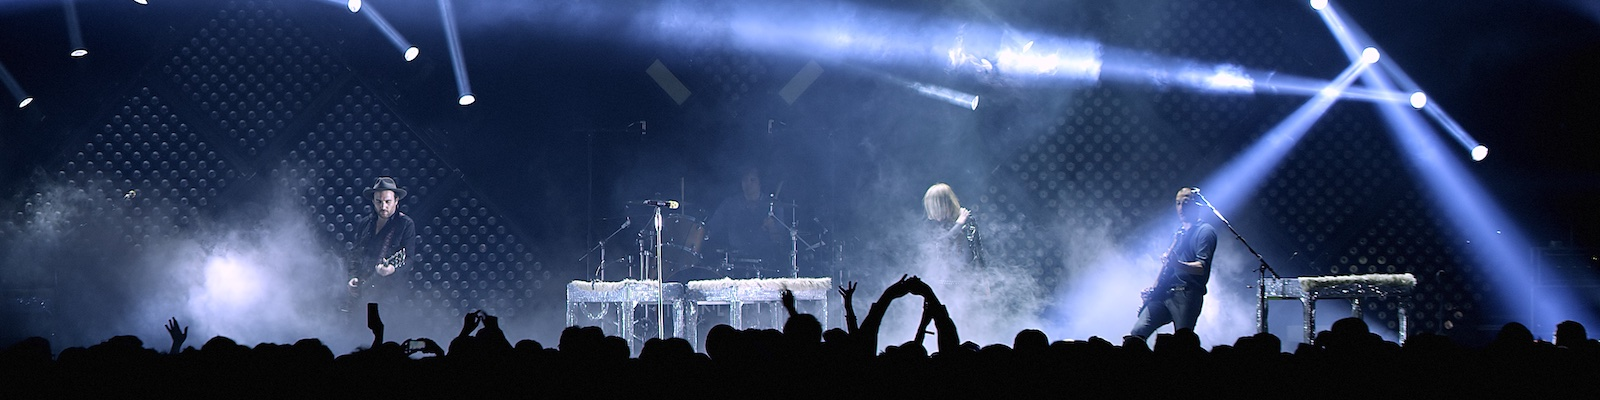 spotlights cross a stage as the rock band Metric performs in front of an audience